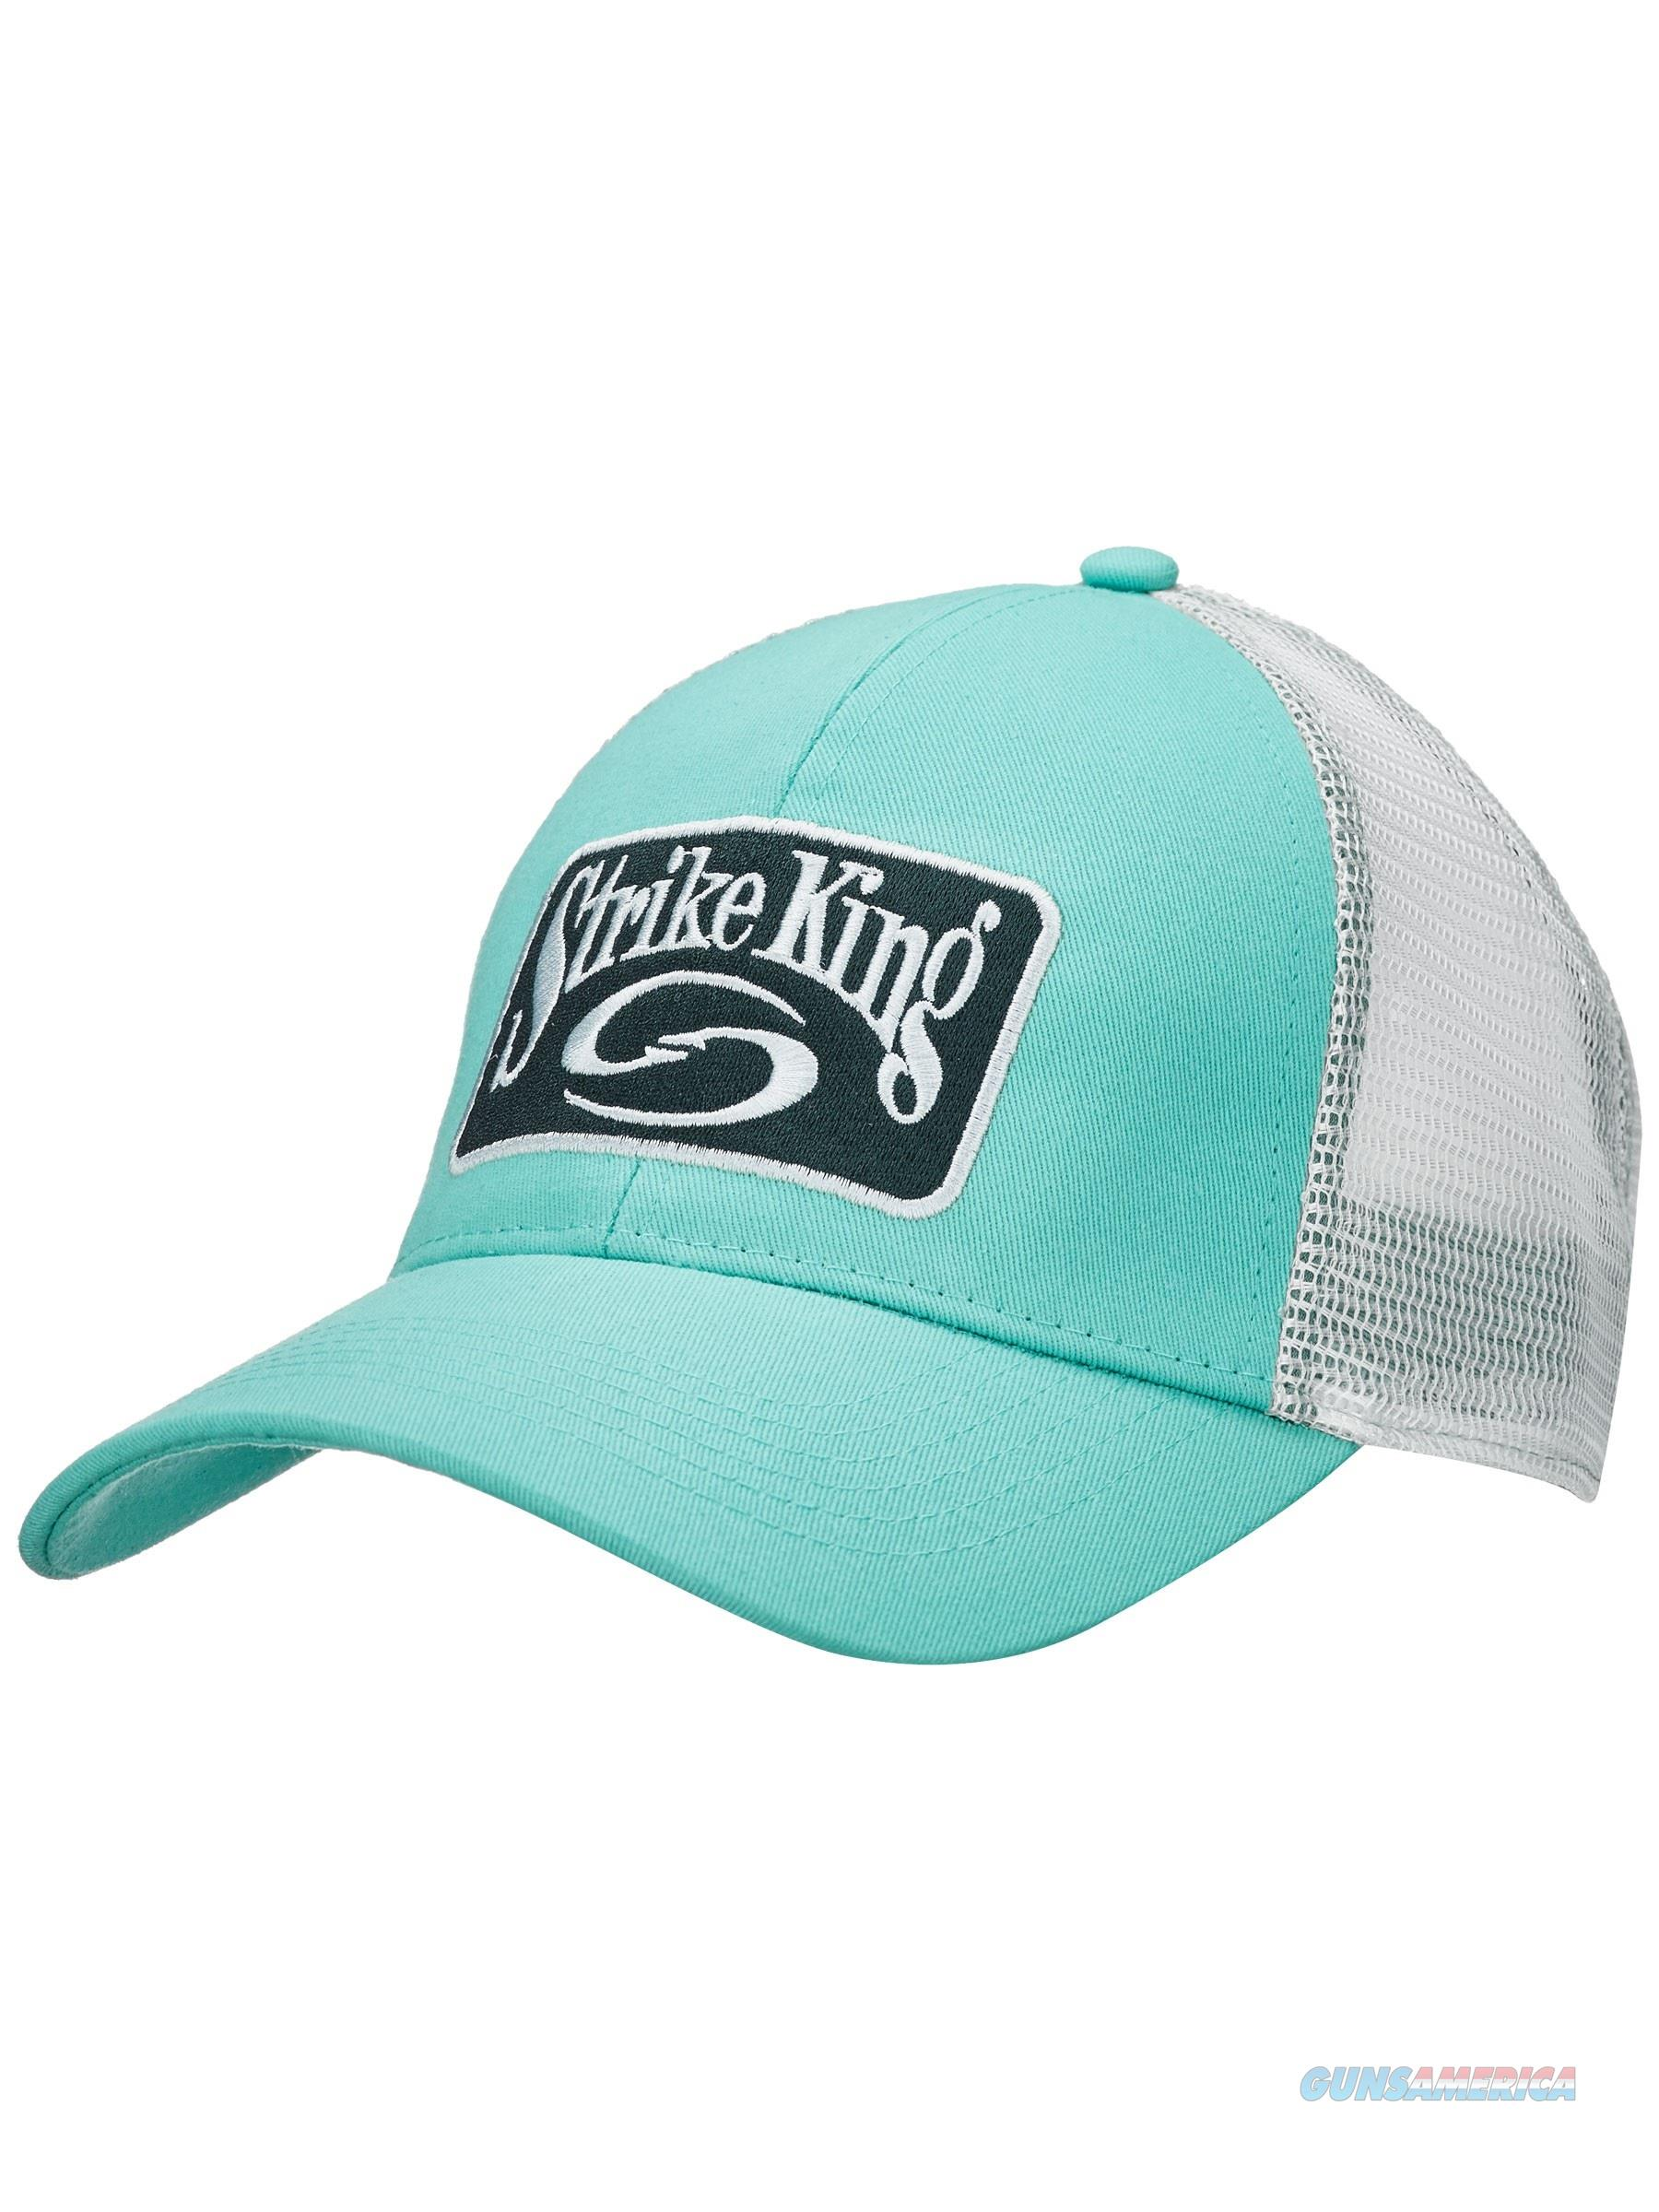 Strike King Trucker Cap Celadon White  Non-Guns > Hunting Clothing and Equipment > Clothing > Hats